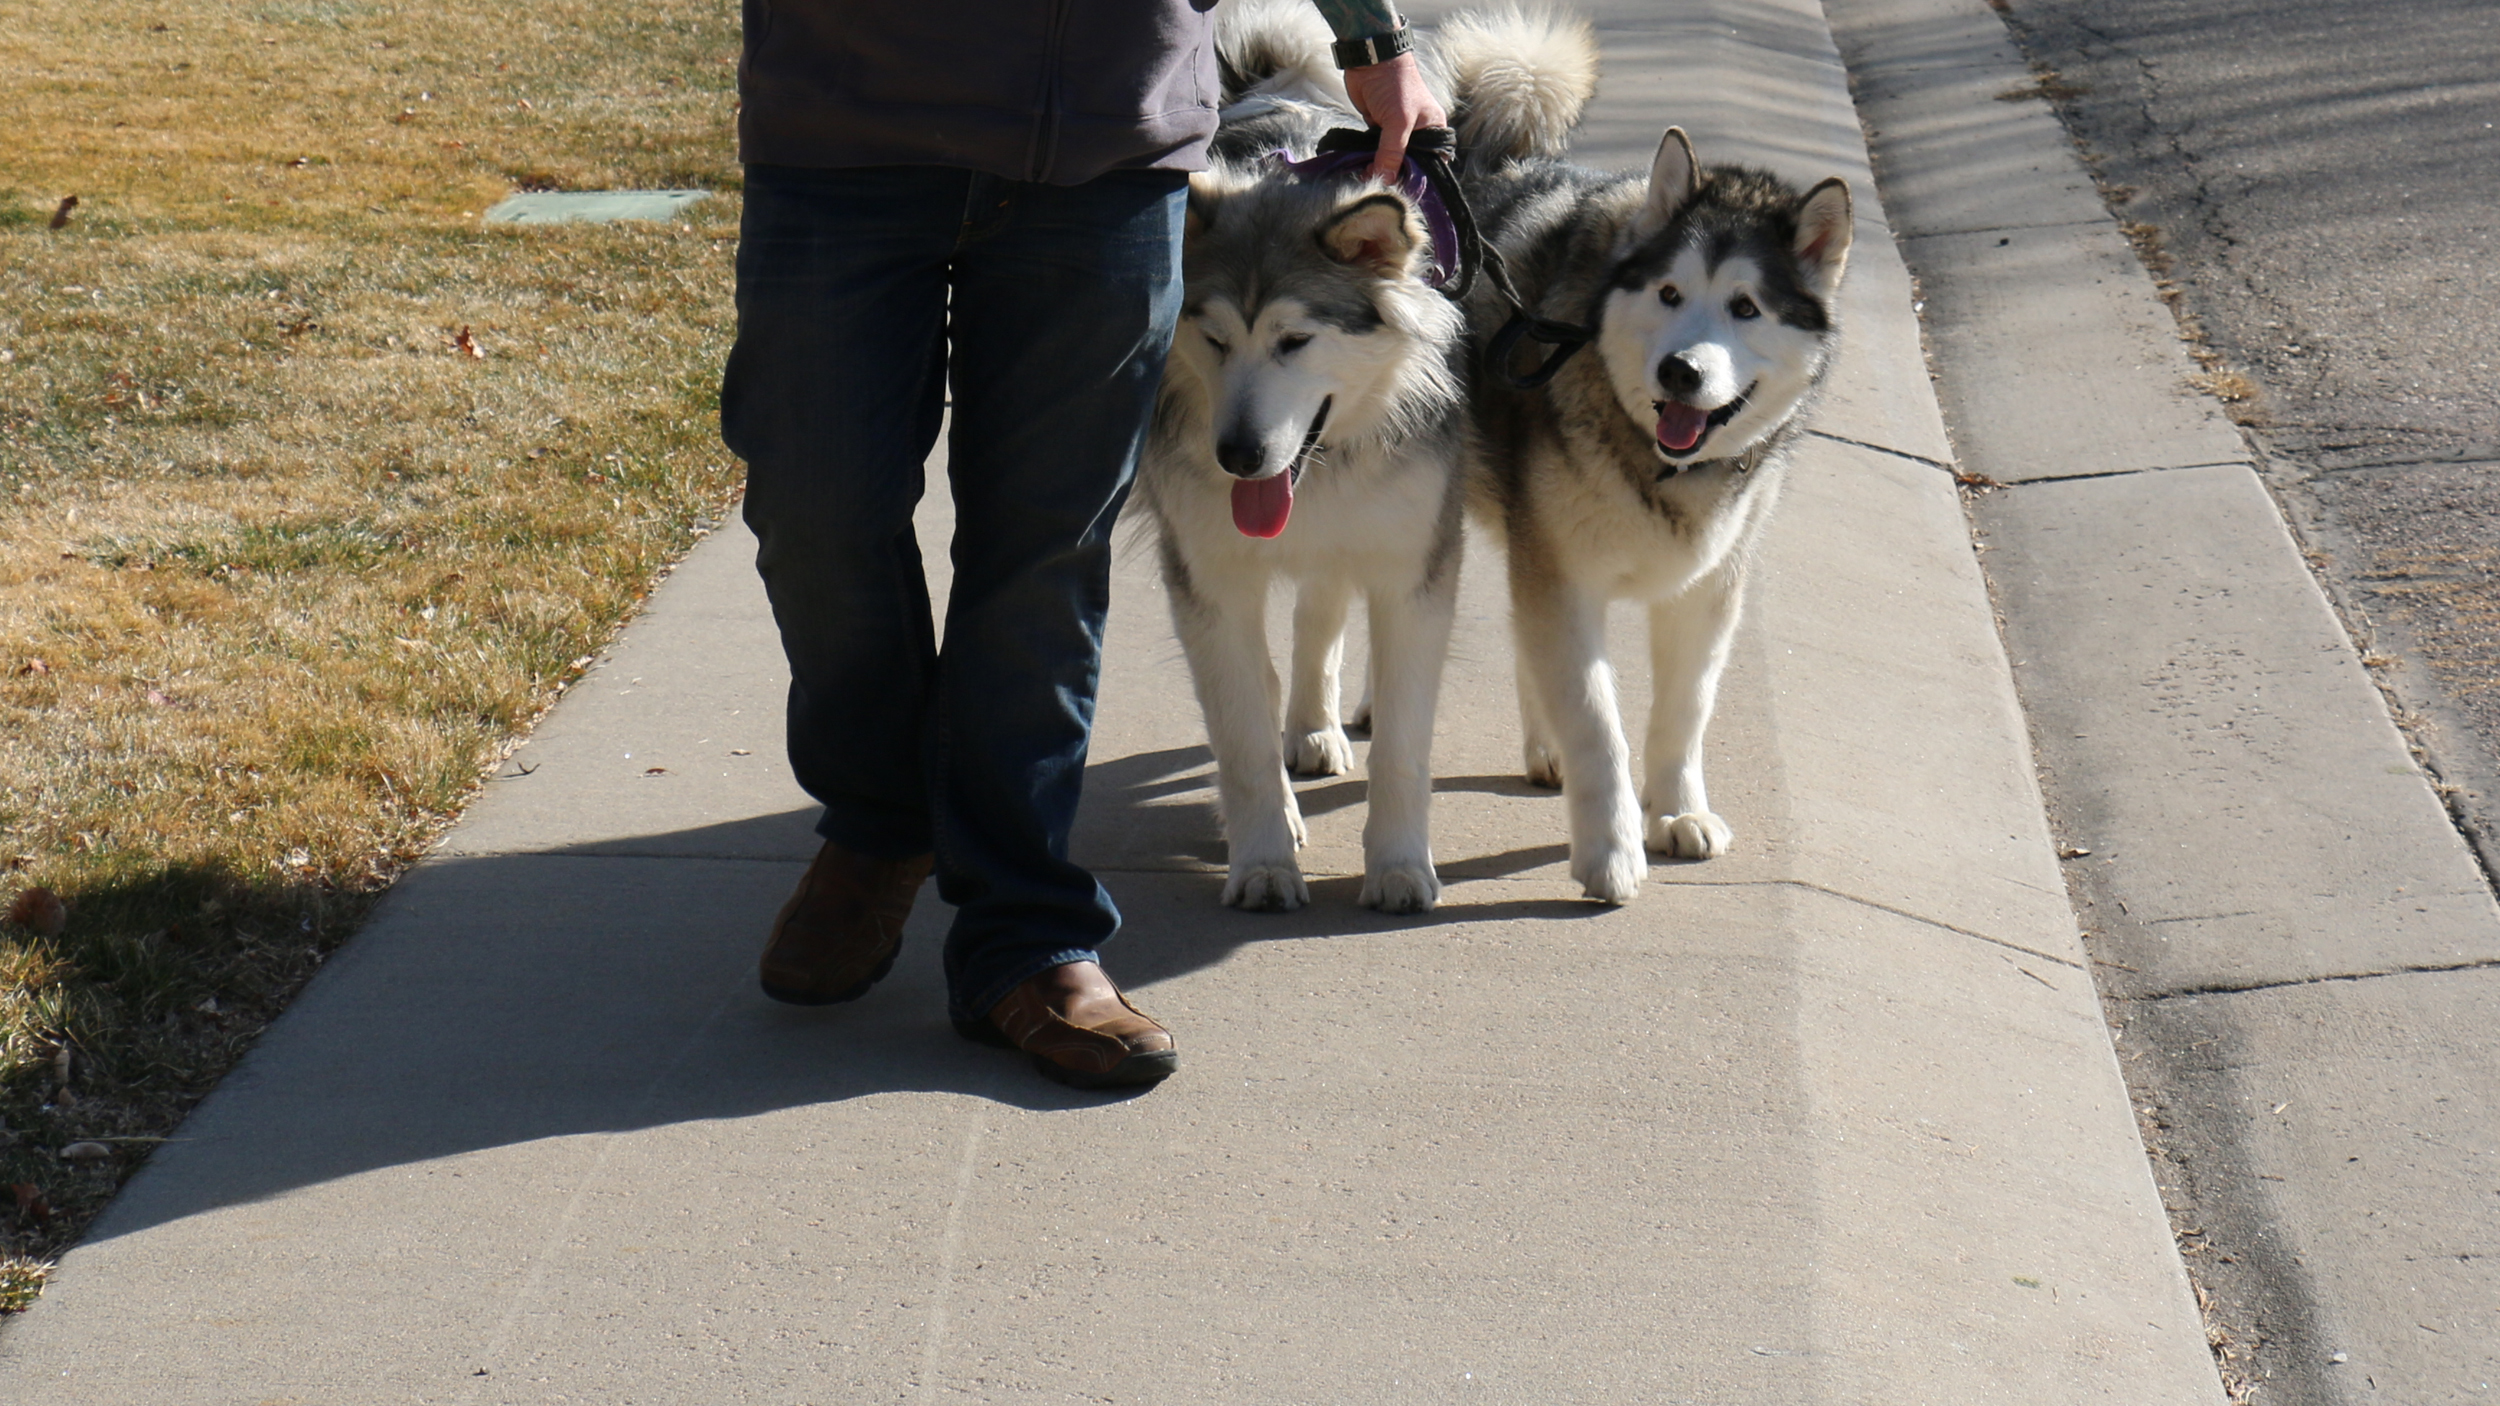 FREE PACK WALKS - Love to Walk Your Dog Again